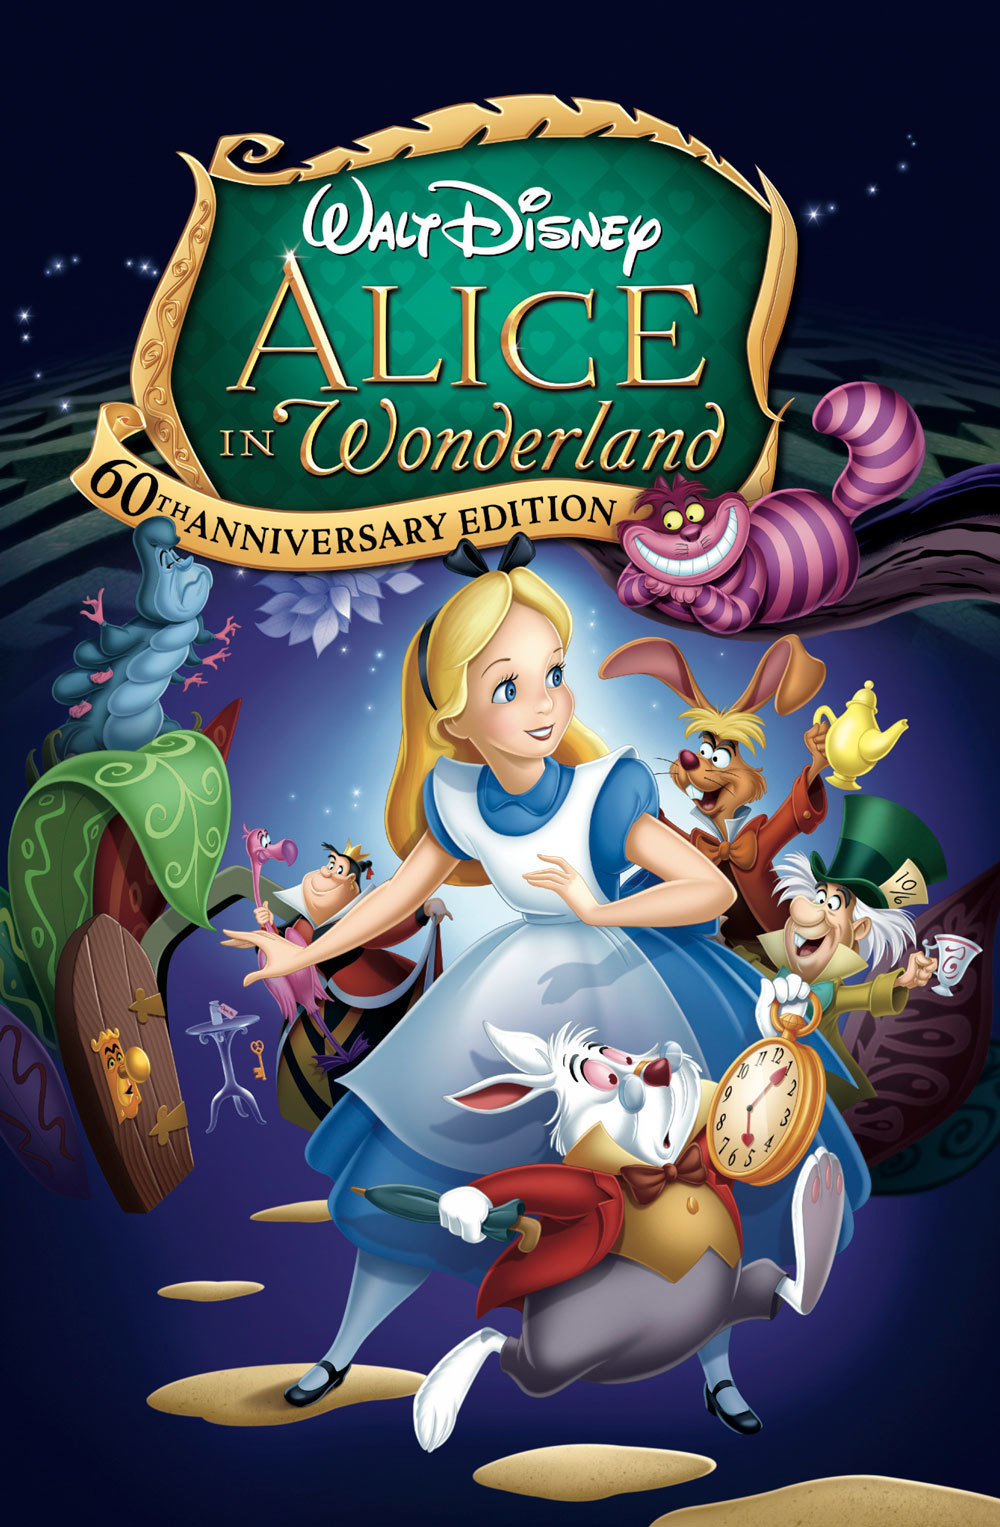 Alice In Wonderland  Disney Movies. Hurt Daughter Quotes. Remembrance Day Quotes Lest We Forget. Faith And Effort Quotes. Greek God Zeus Quotes. Tumblr Quotes Indie. Crush Quotes On We Heart It. Tattoo Quotes Honor. Smile Quotes On Twitter